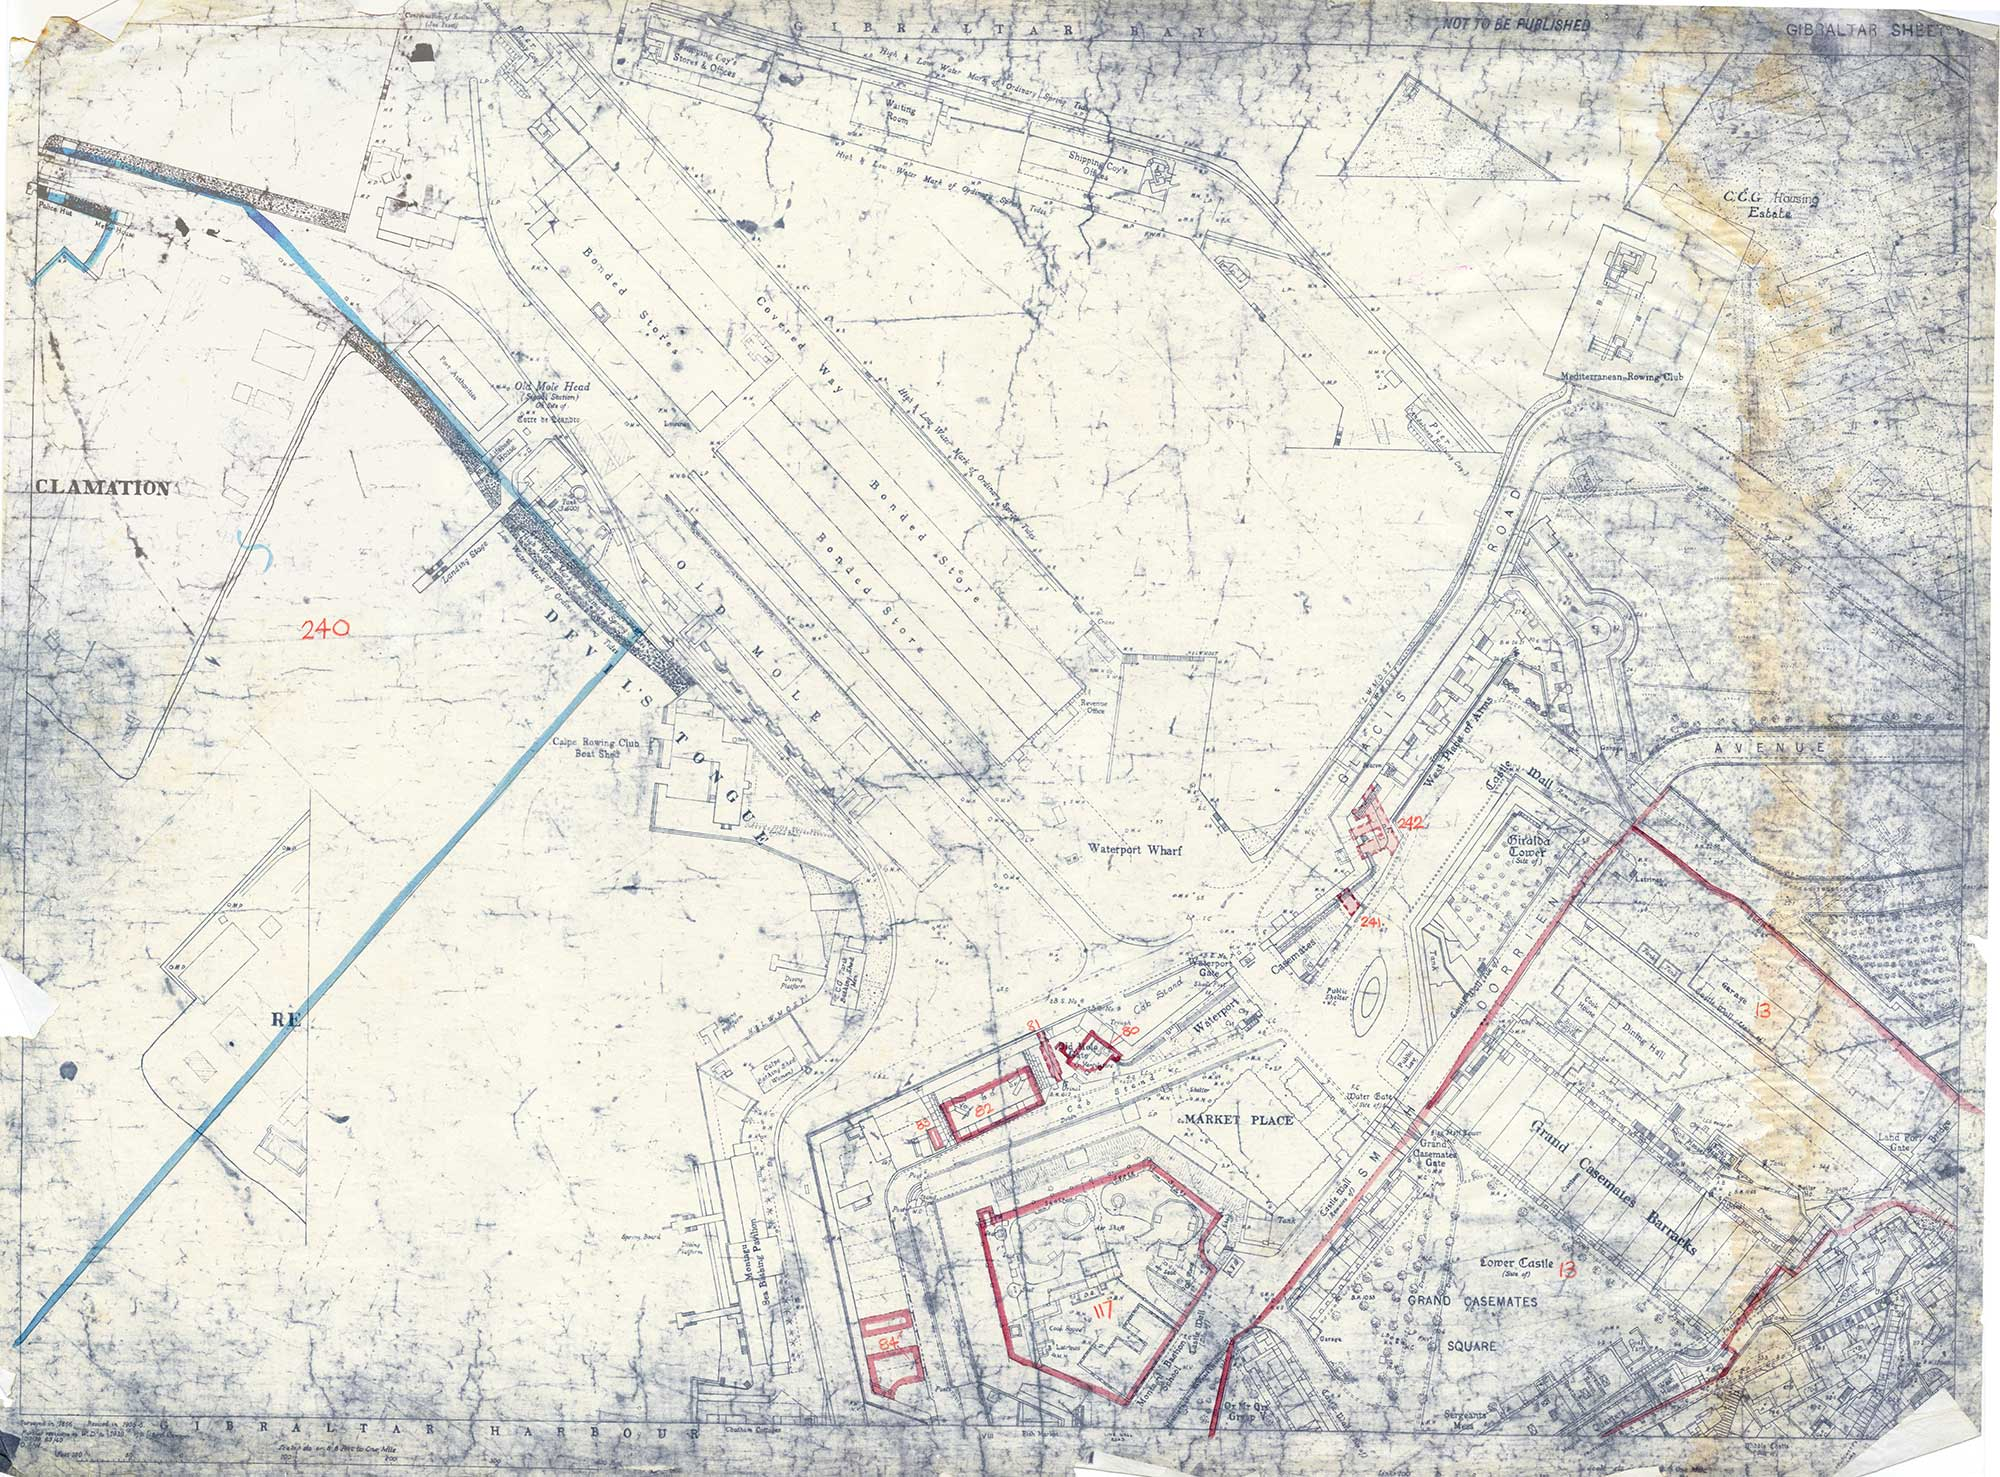 Map-38-OS-Sheet-5-Casemate-Square---Devils-tongue-1941